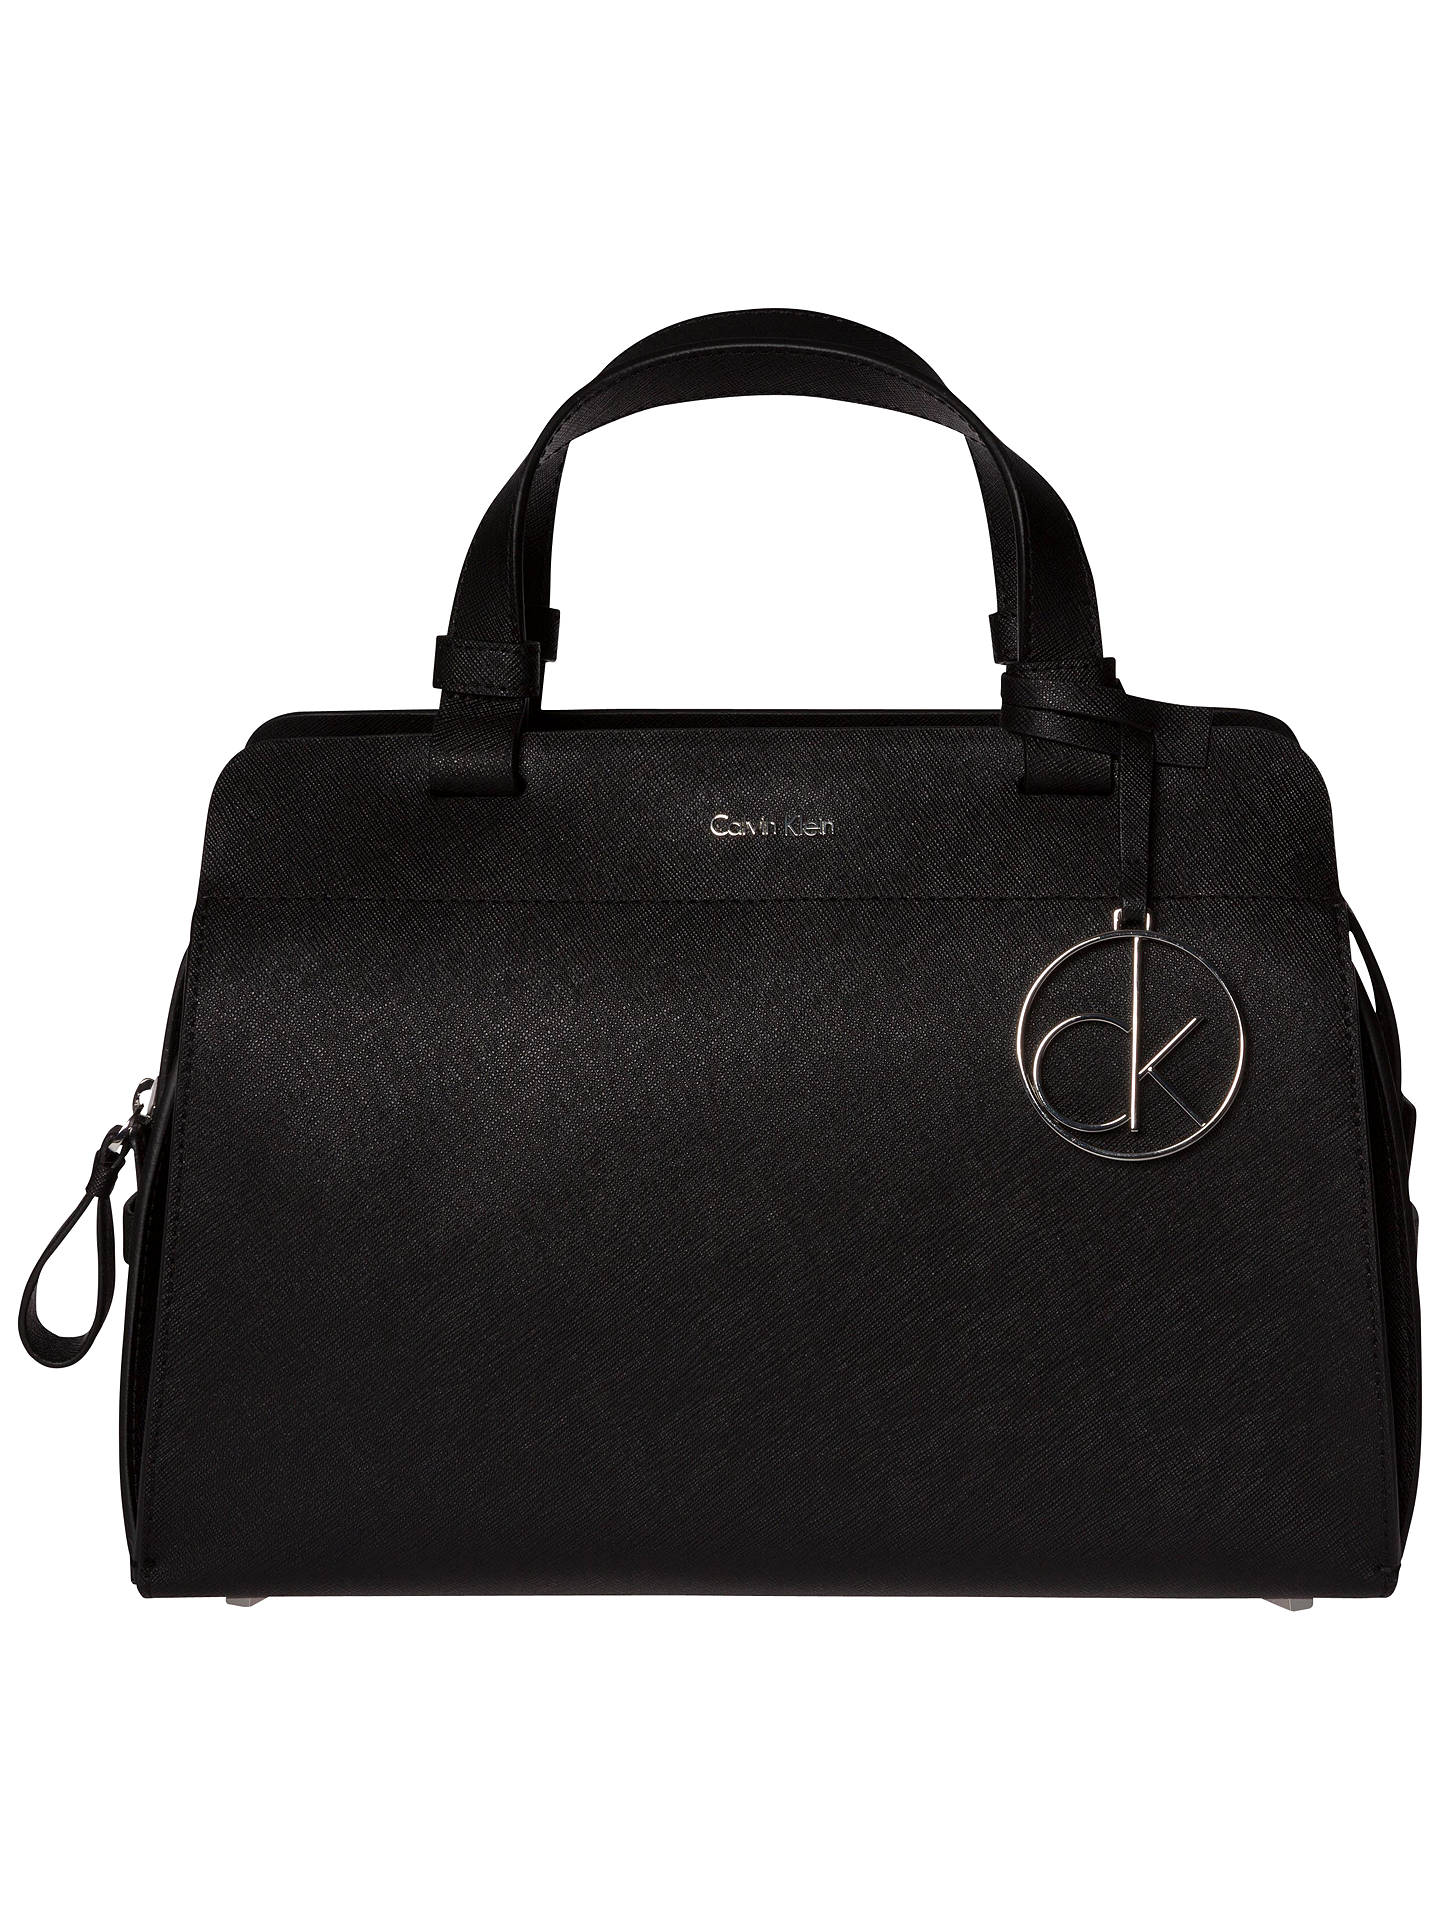 695fe2beee9 Calvin Klein Sofie Small Leather Duffle Bag at John Lewis   Partners